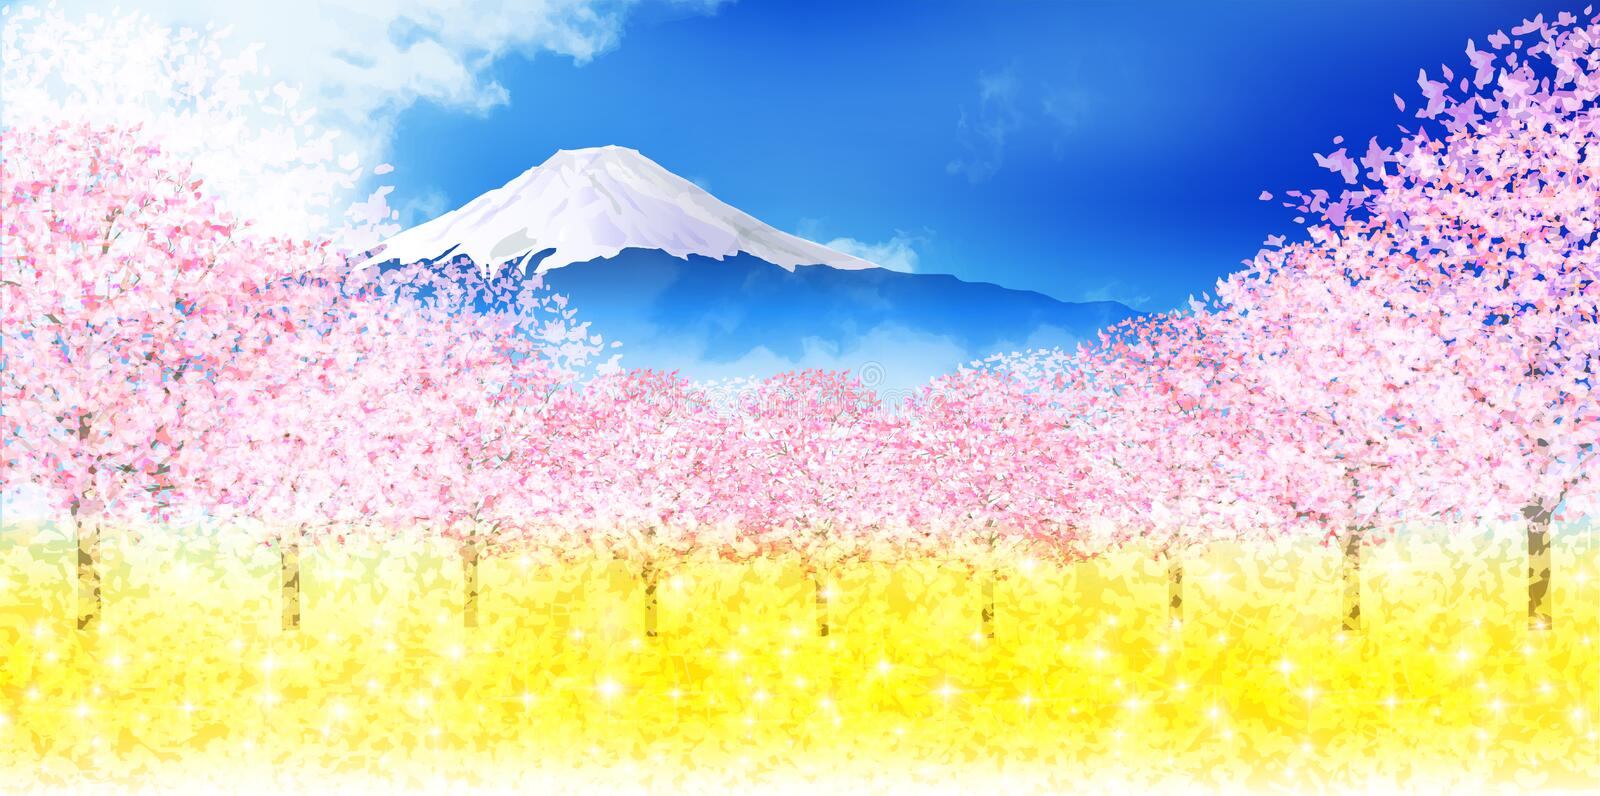 Cherry blossom illustration royalty free illustration